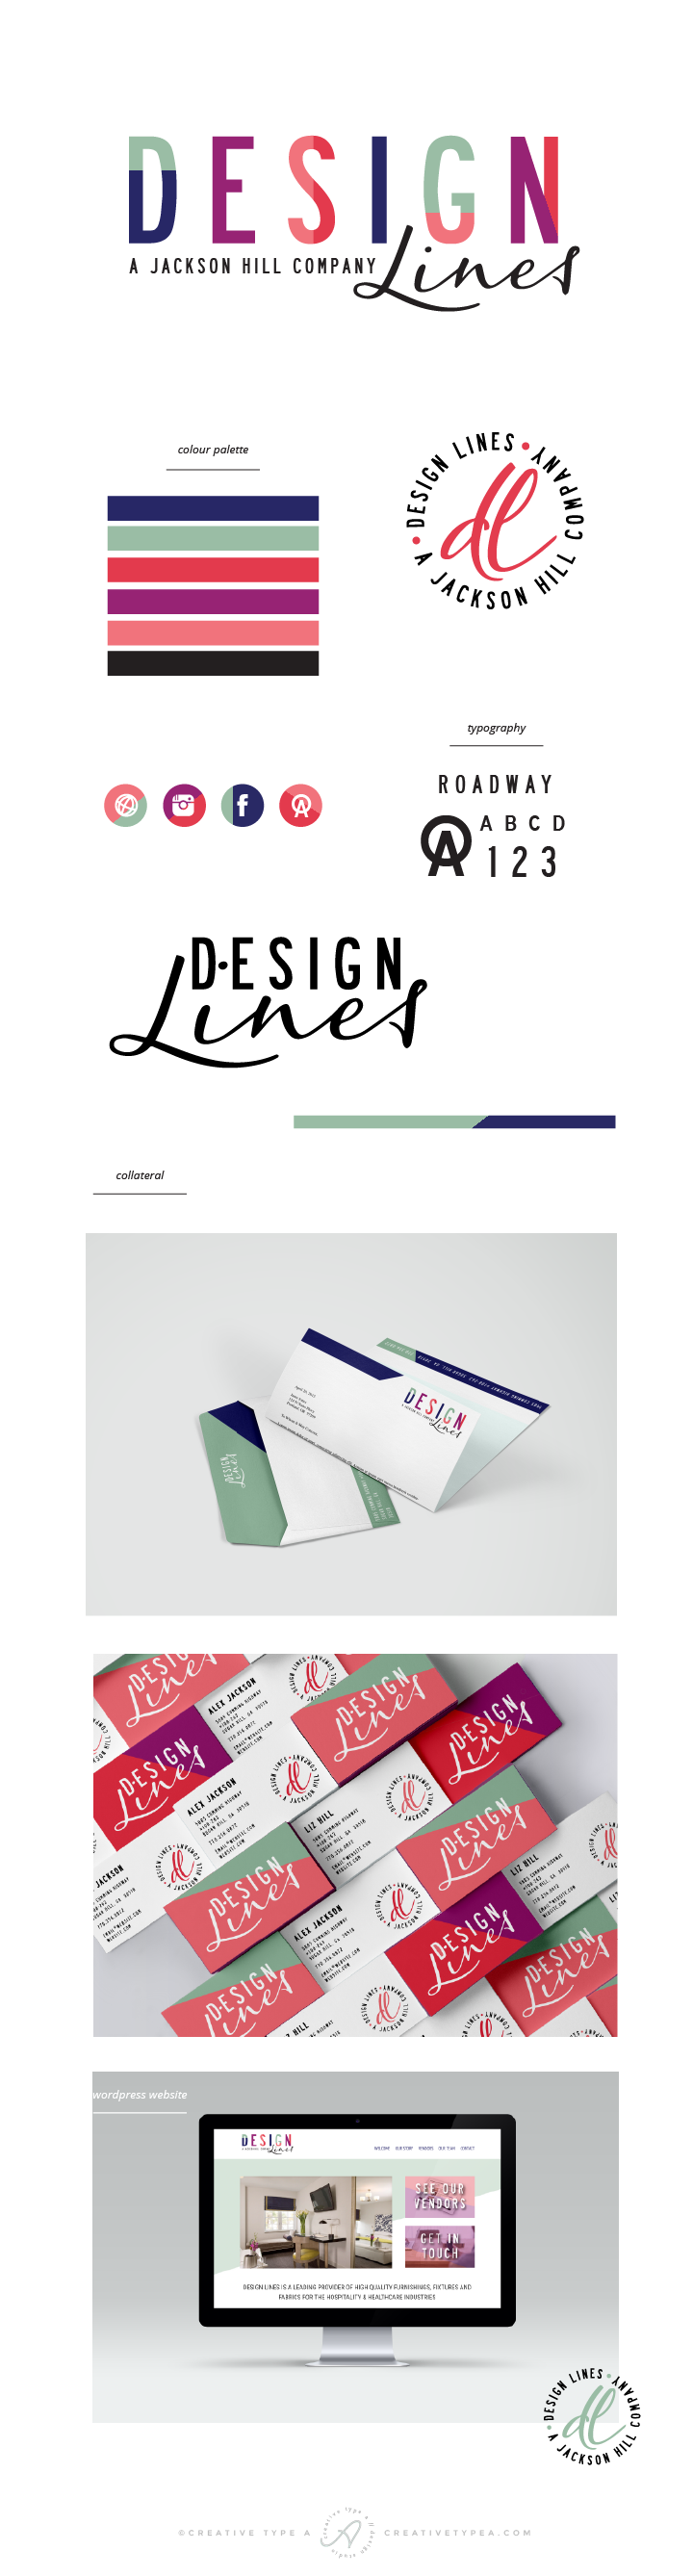 Design-Lines-Brand-Board.png